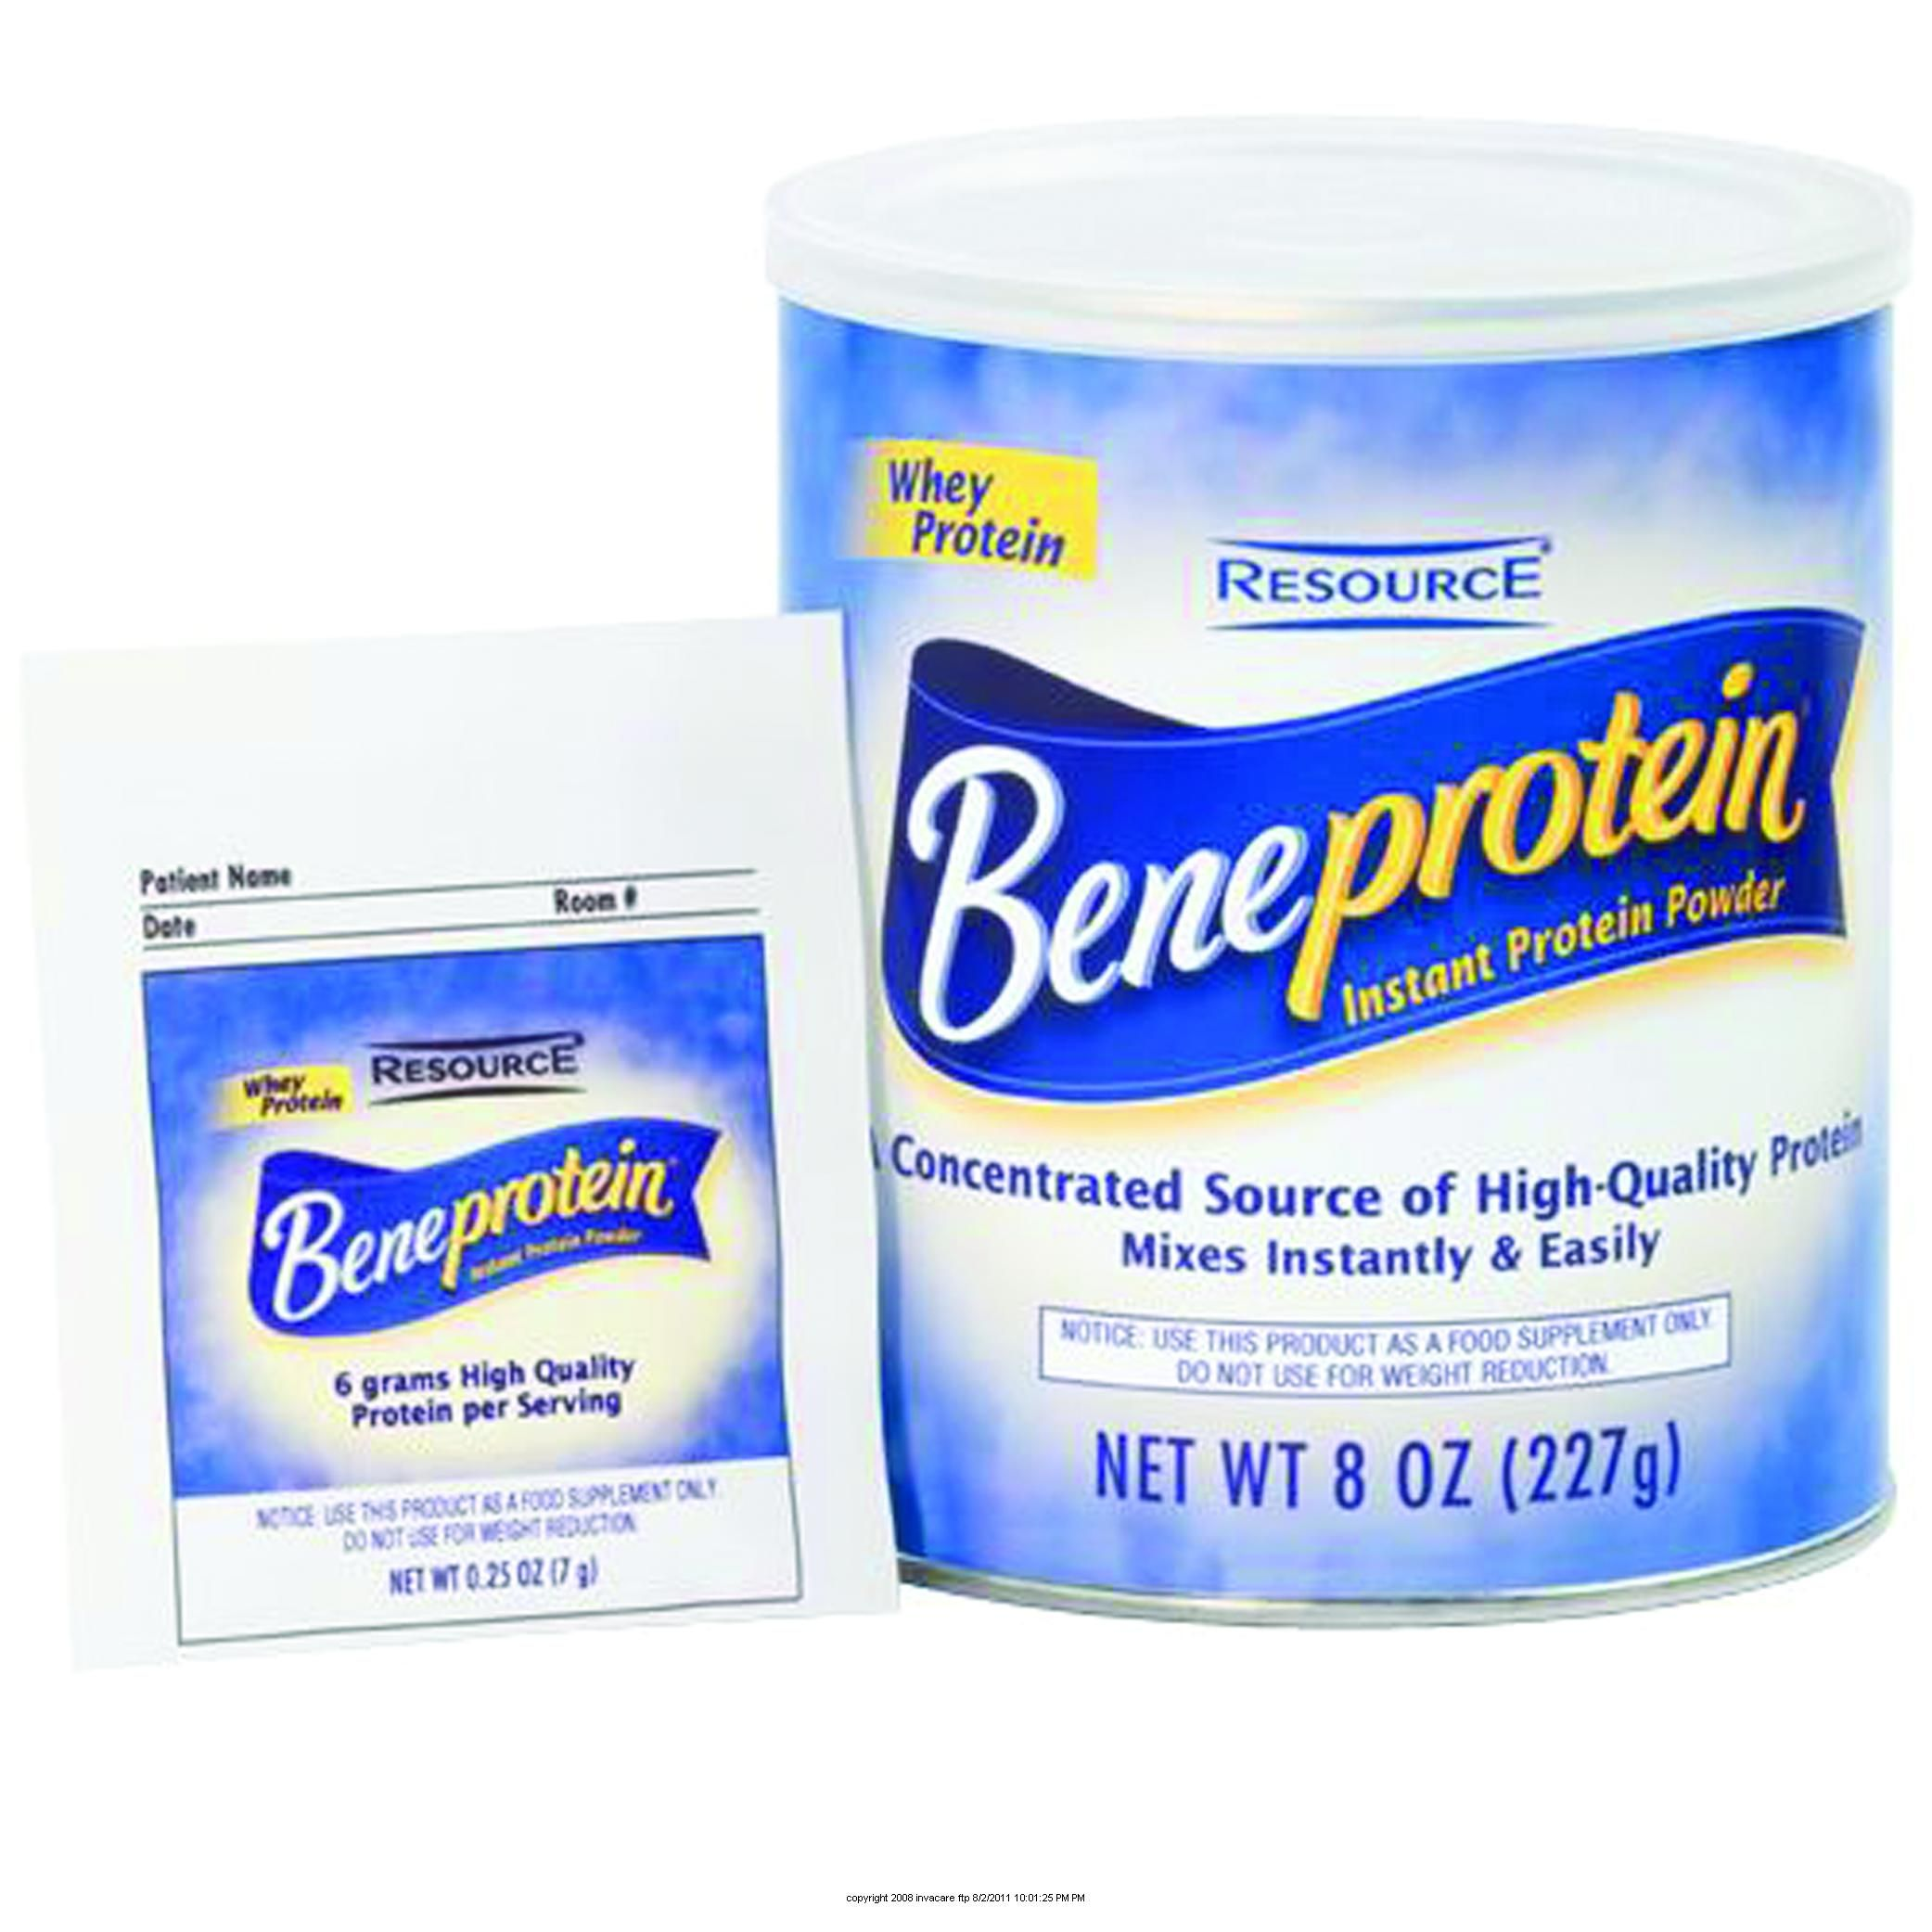 Resource Beneprotein Instant Protein Powder Protein Baby Formula Protien Powders